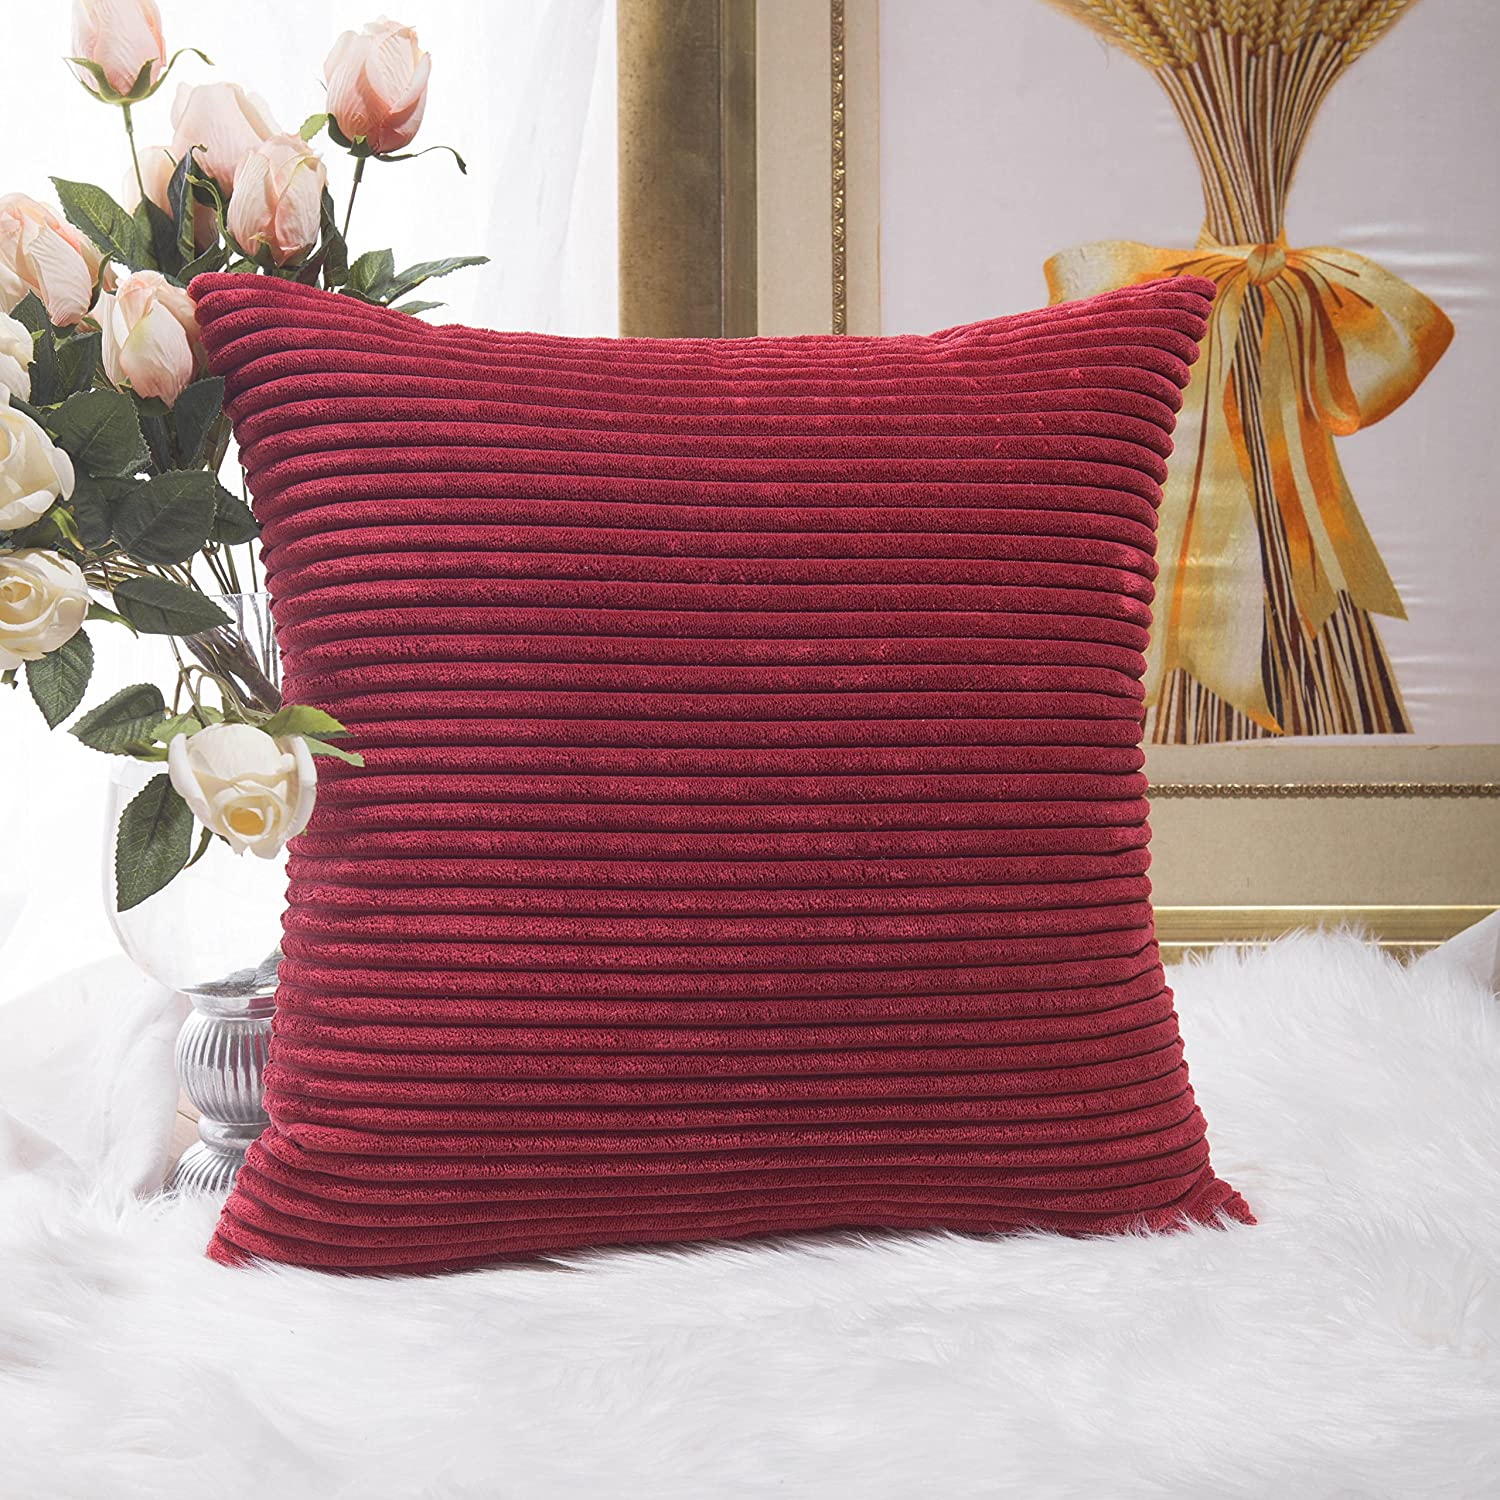 Home Brilliant Super Soft Plush Corduroy Striped Christmas Throw Pillow Cushion Covers For Sofa Couch Bed 18 X 45x45 Dark Red Amazoncouk